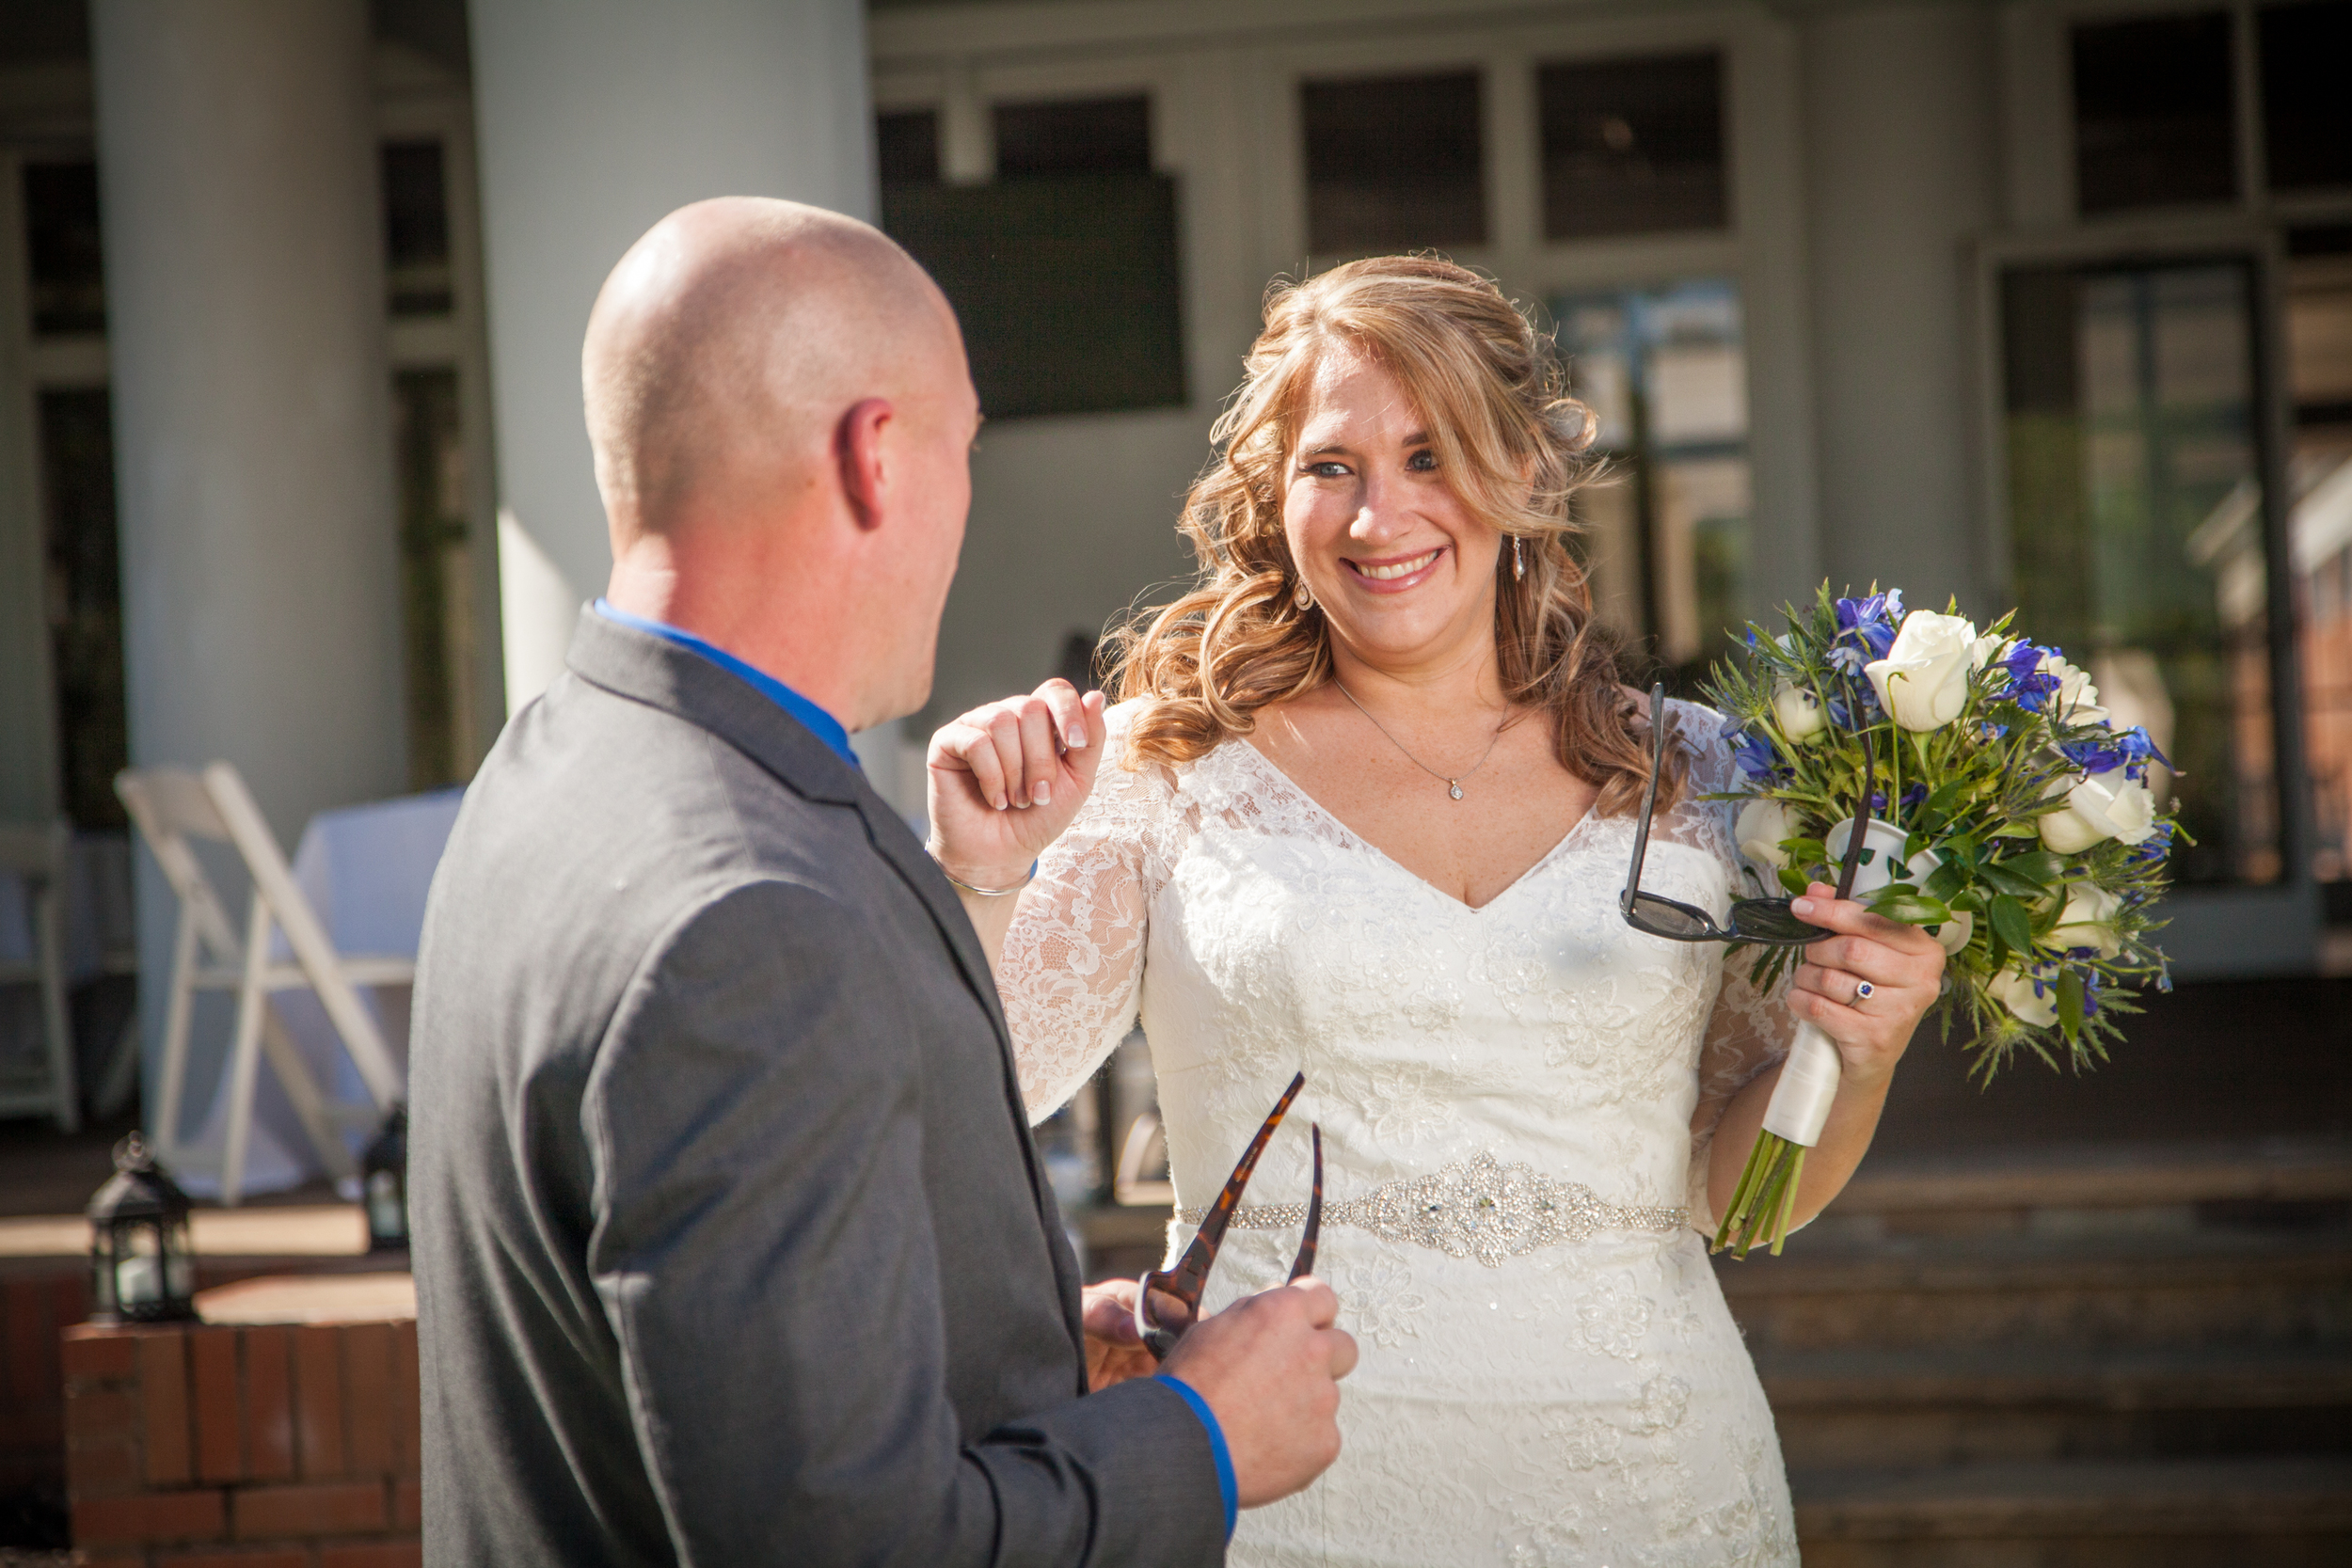 The couple share a first look before the start of the ceremony on the Kingwood Golf Course.